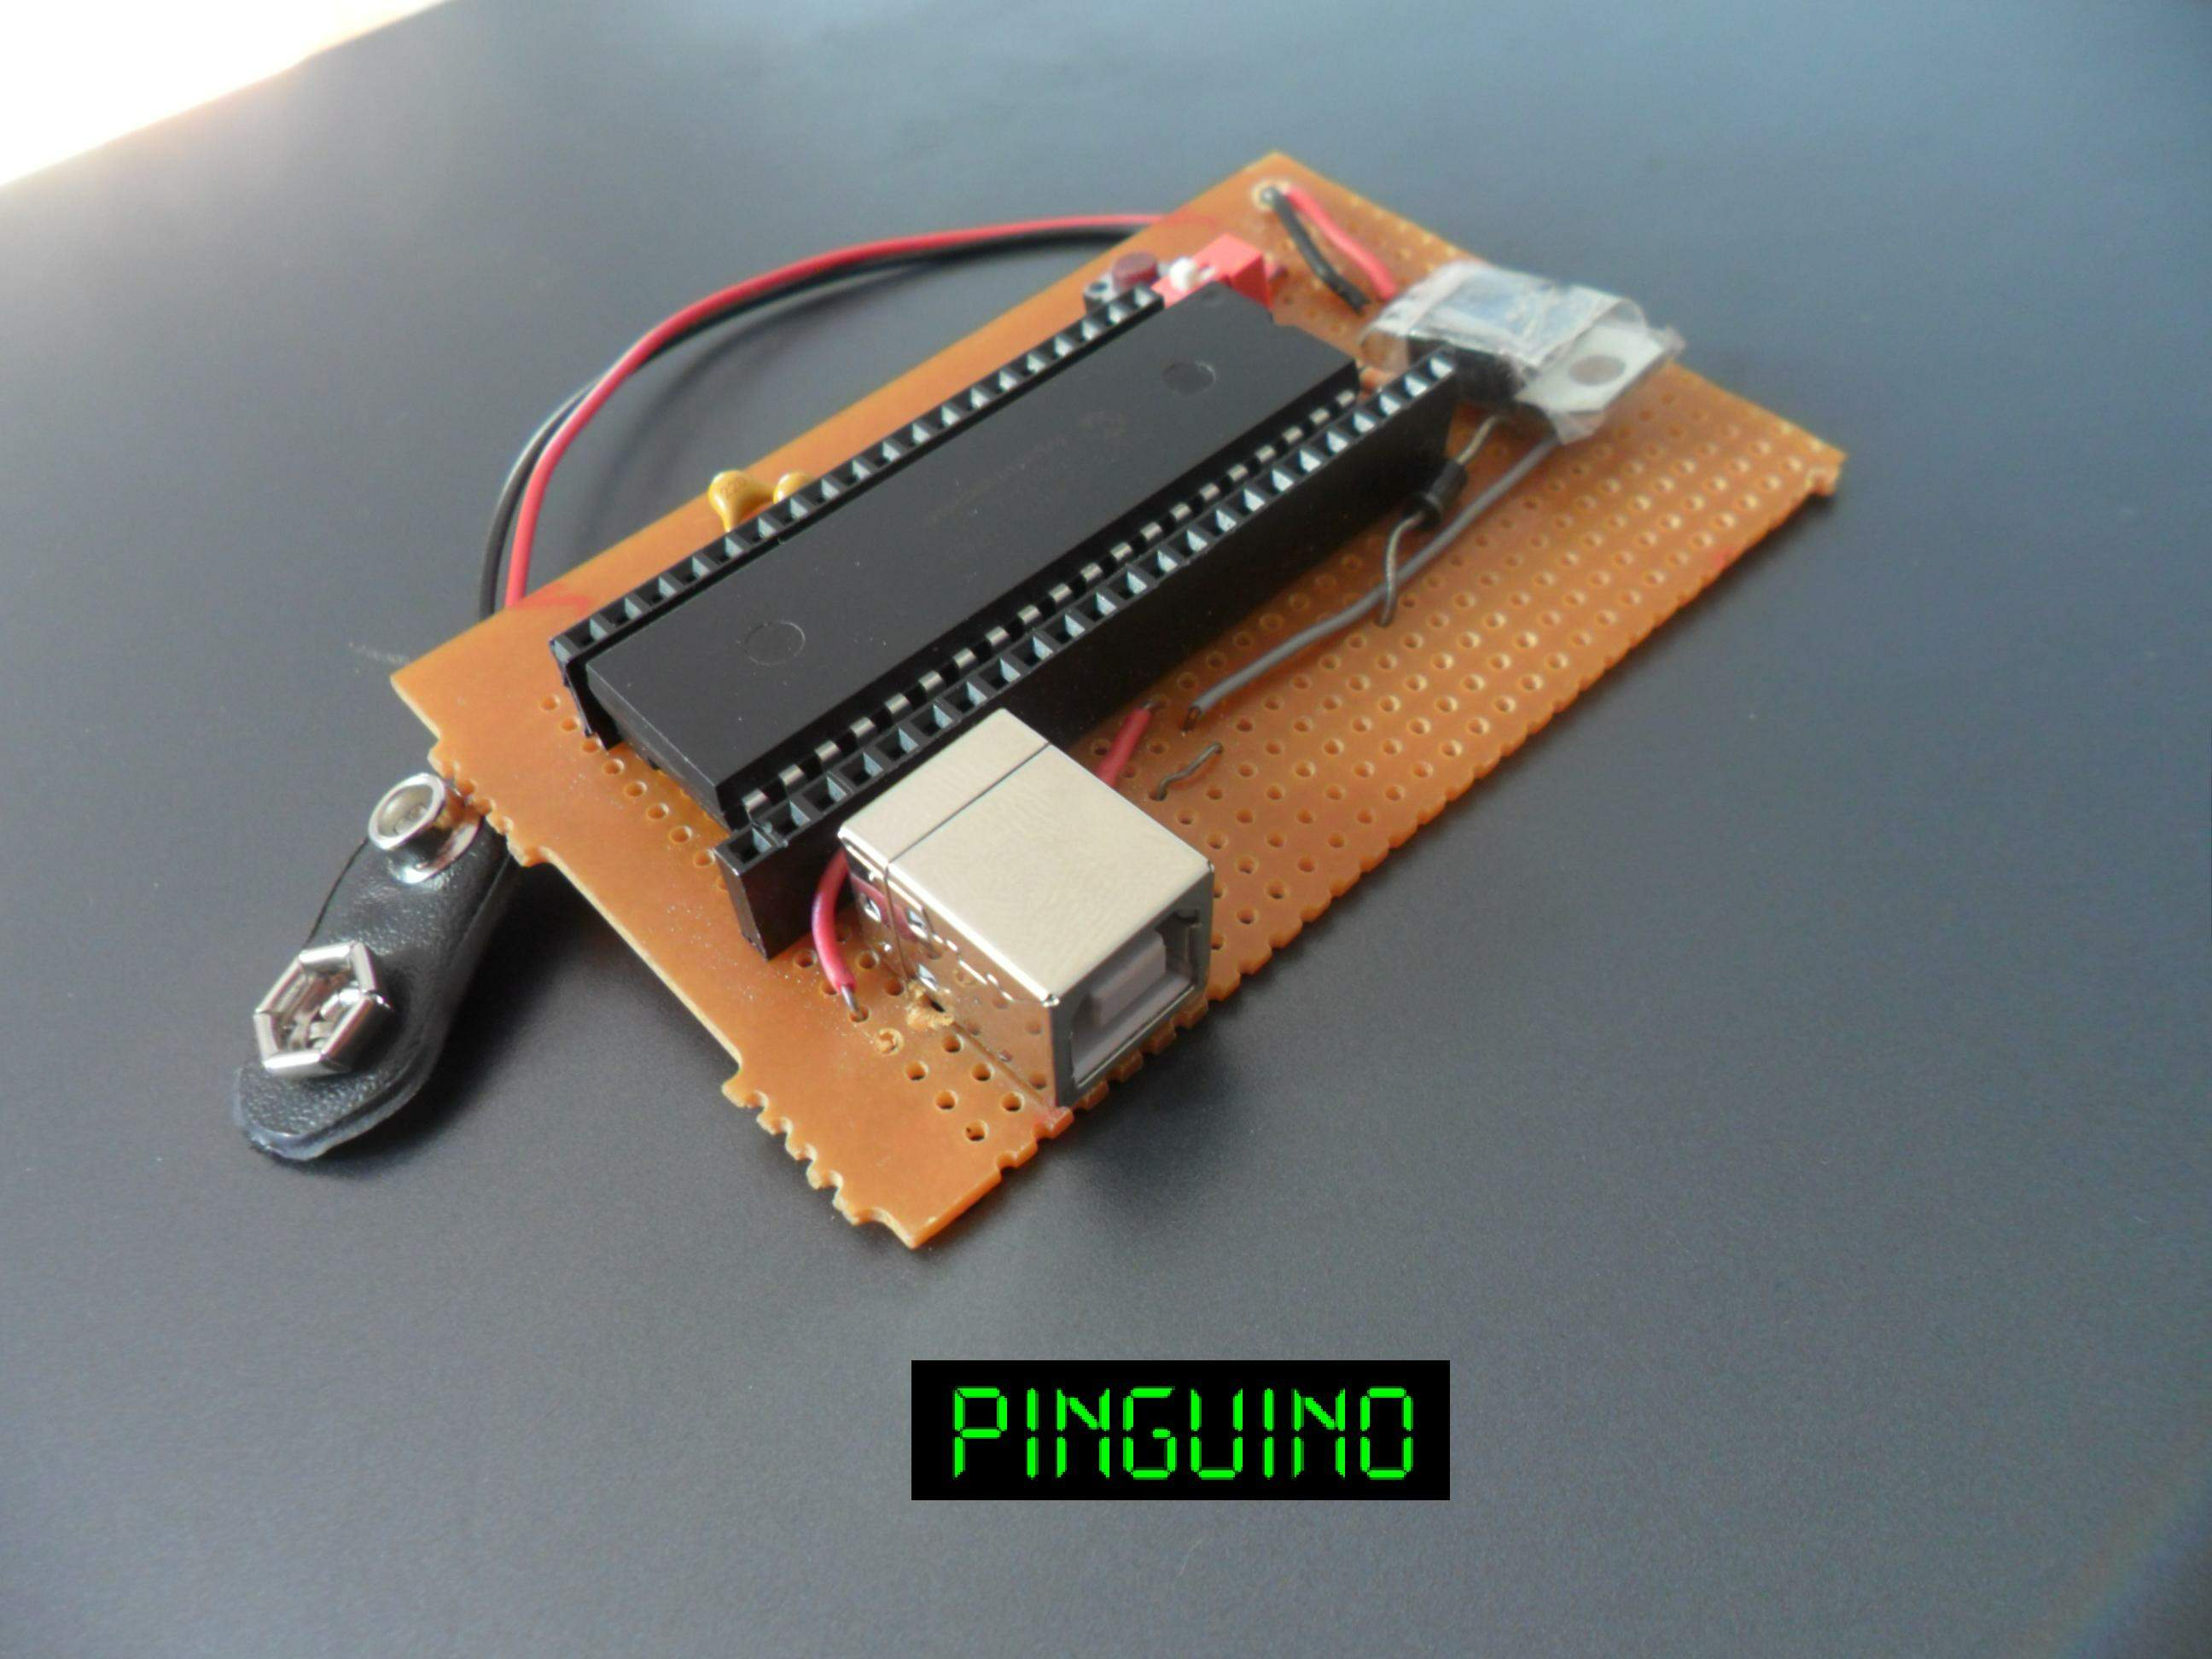 Pinguino Egypt - PIC Based Arduino